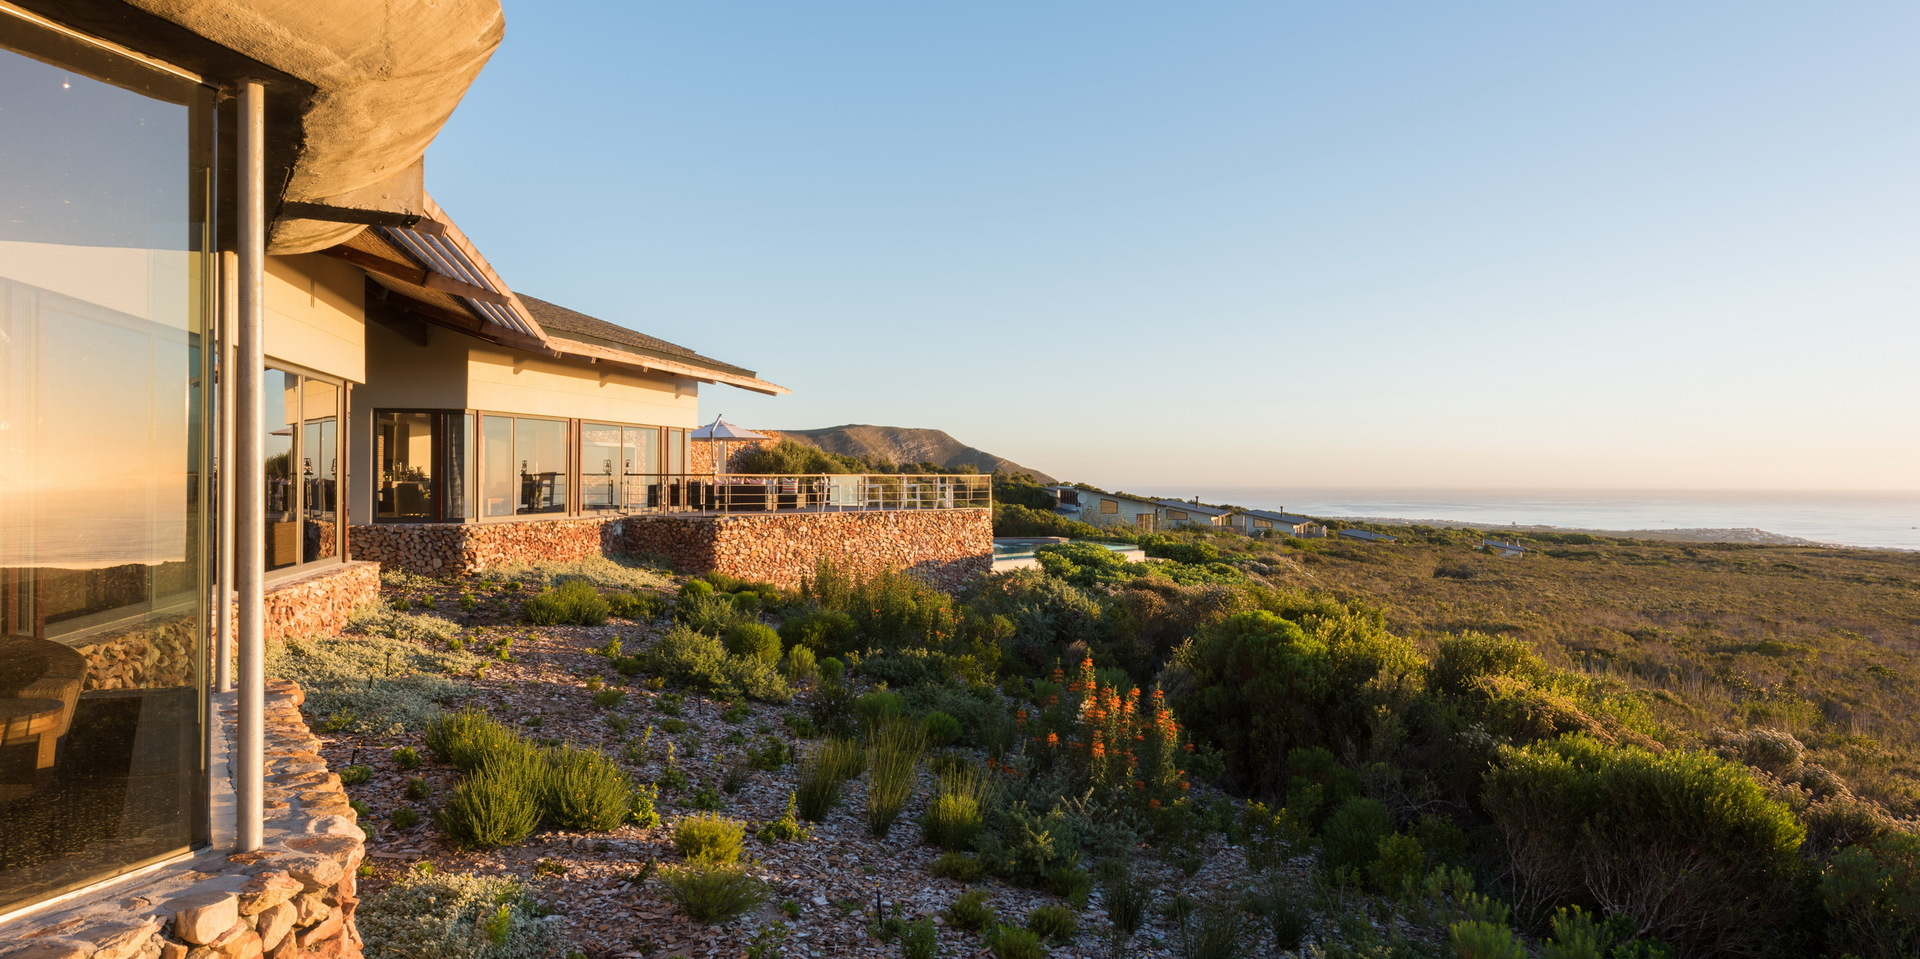 grootbos forest lodge - exterior #9.jpg